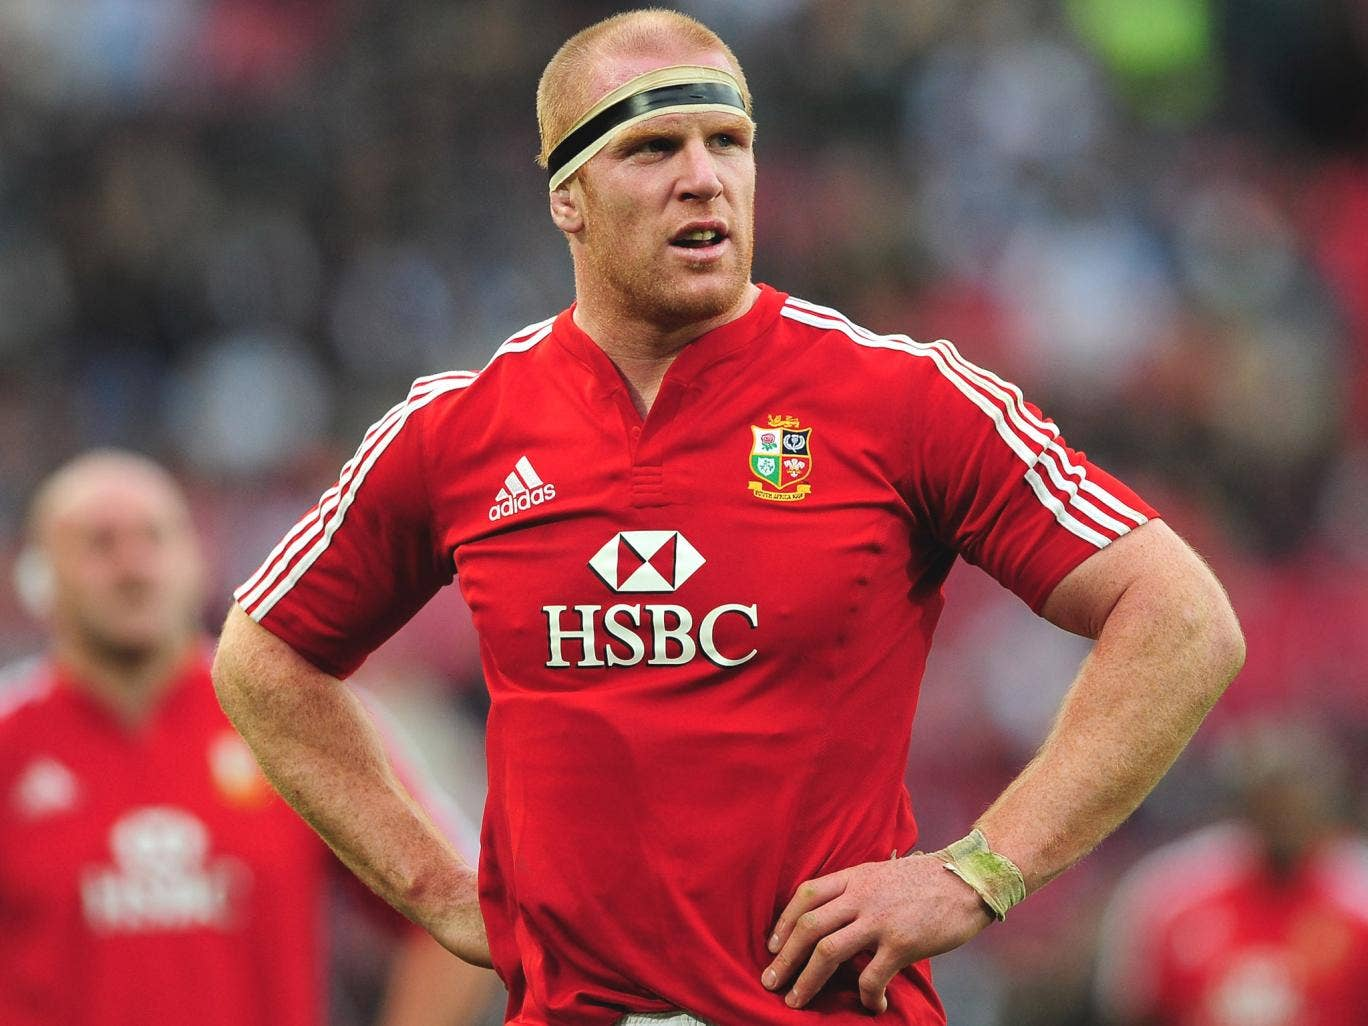 O'Connell captained the Lions in South Africa four years ago